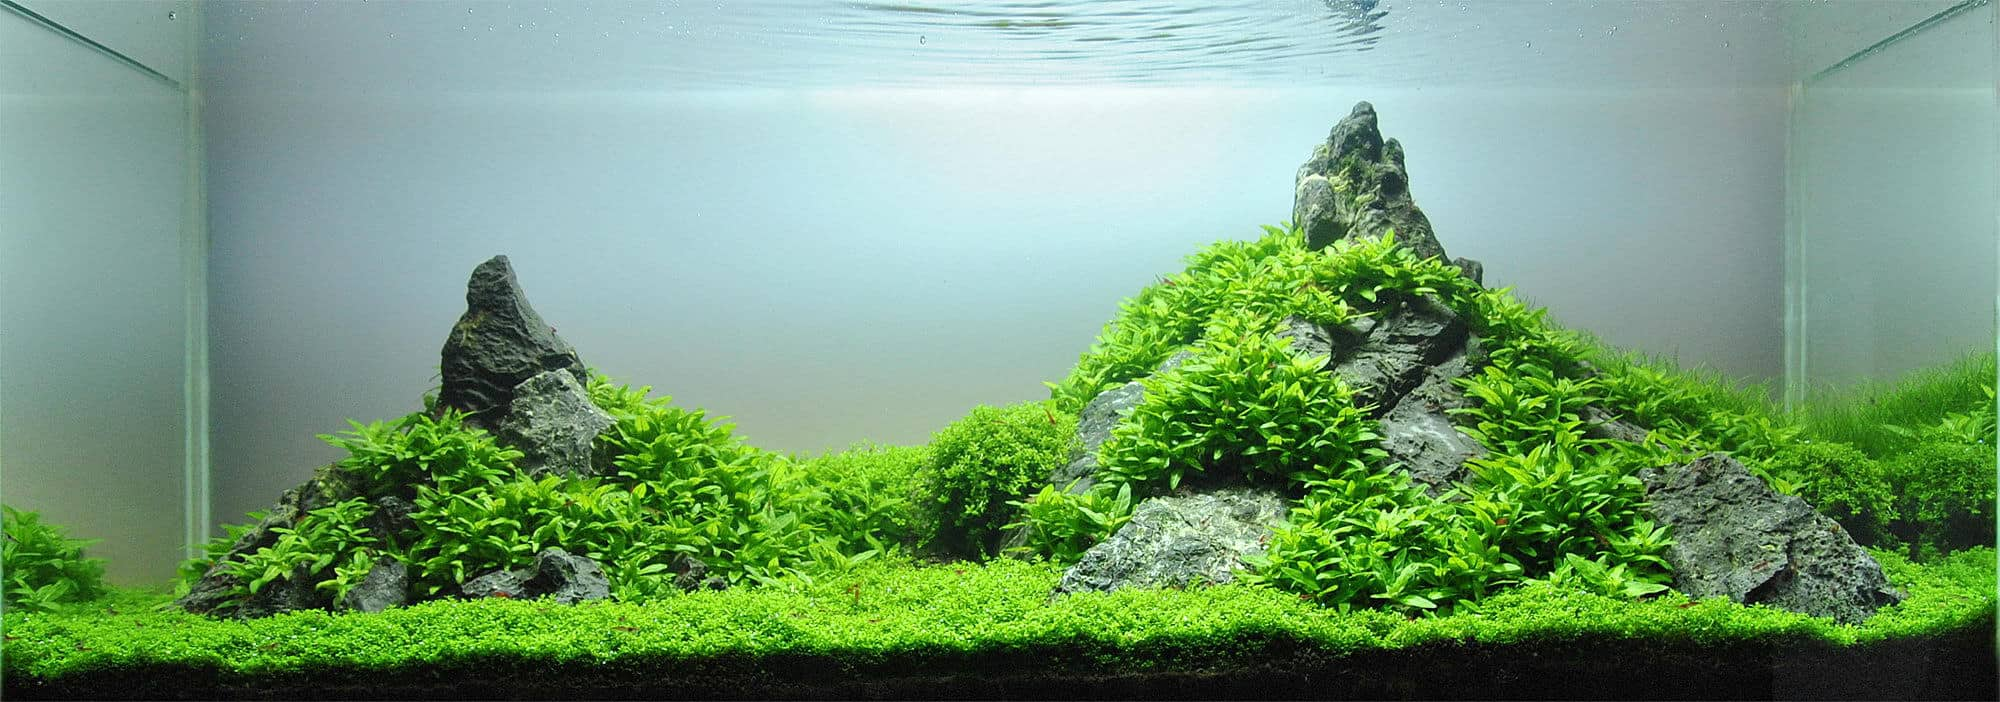 Carpeting Plants Without CO2: Step by Step Guide (updated)